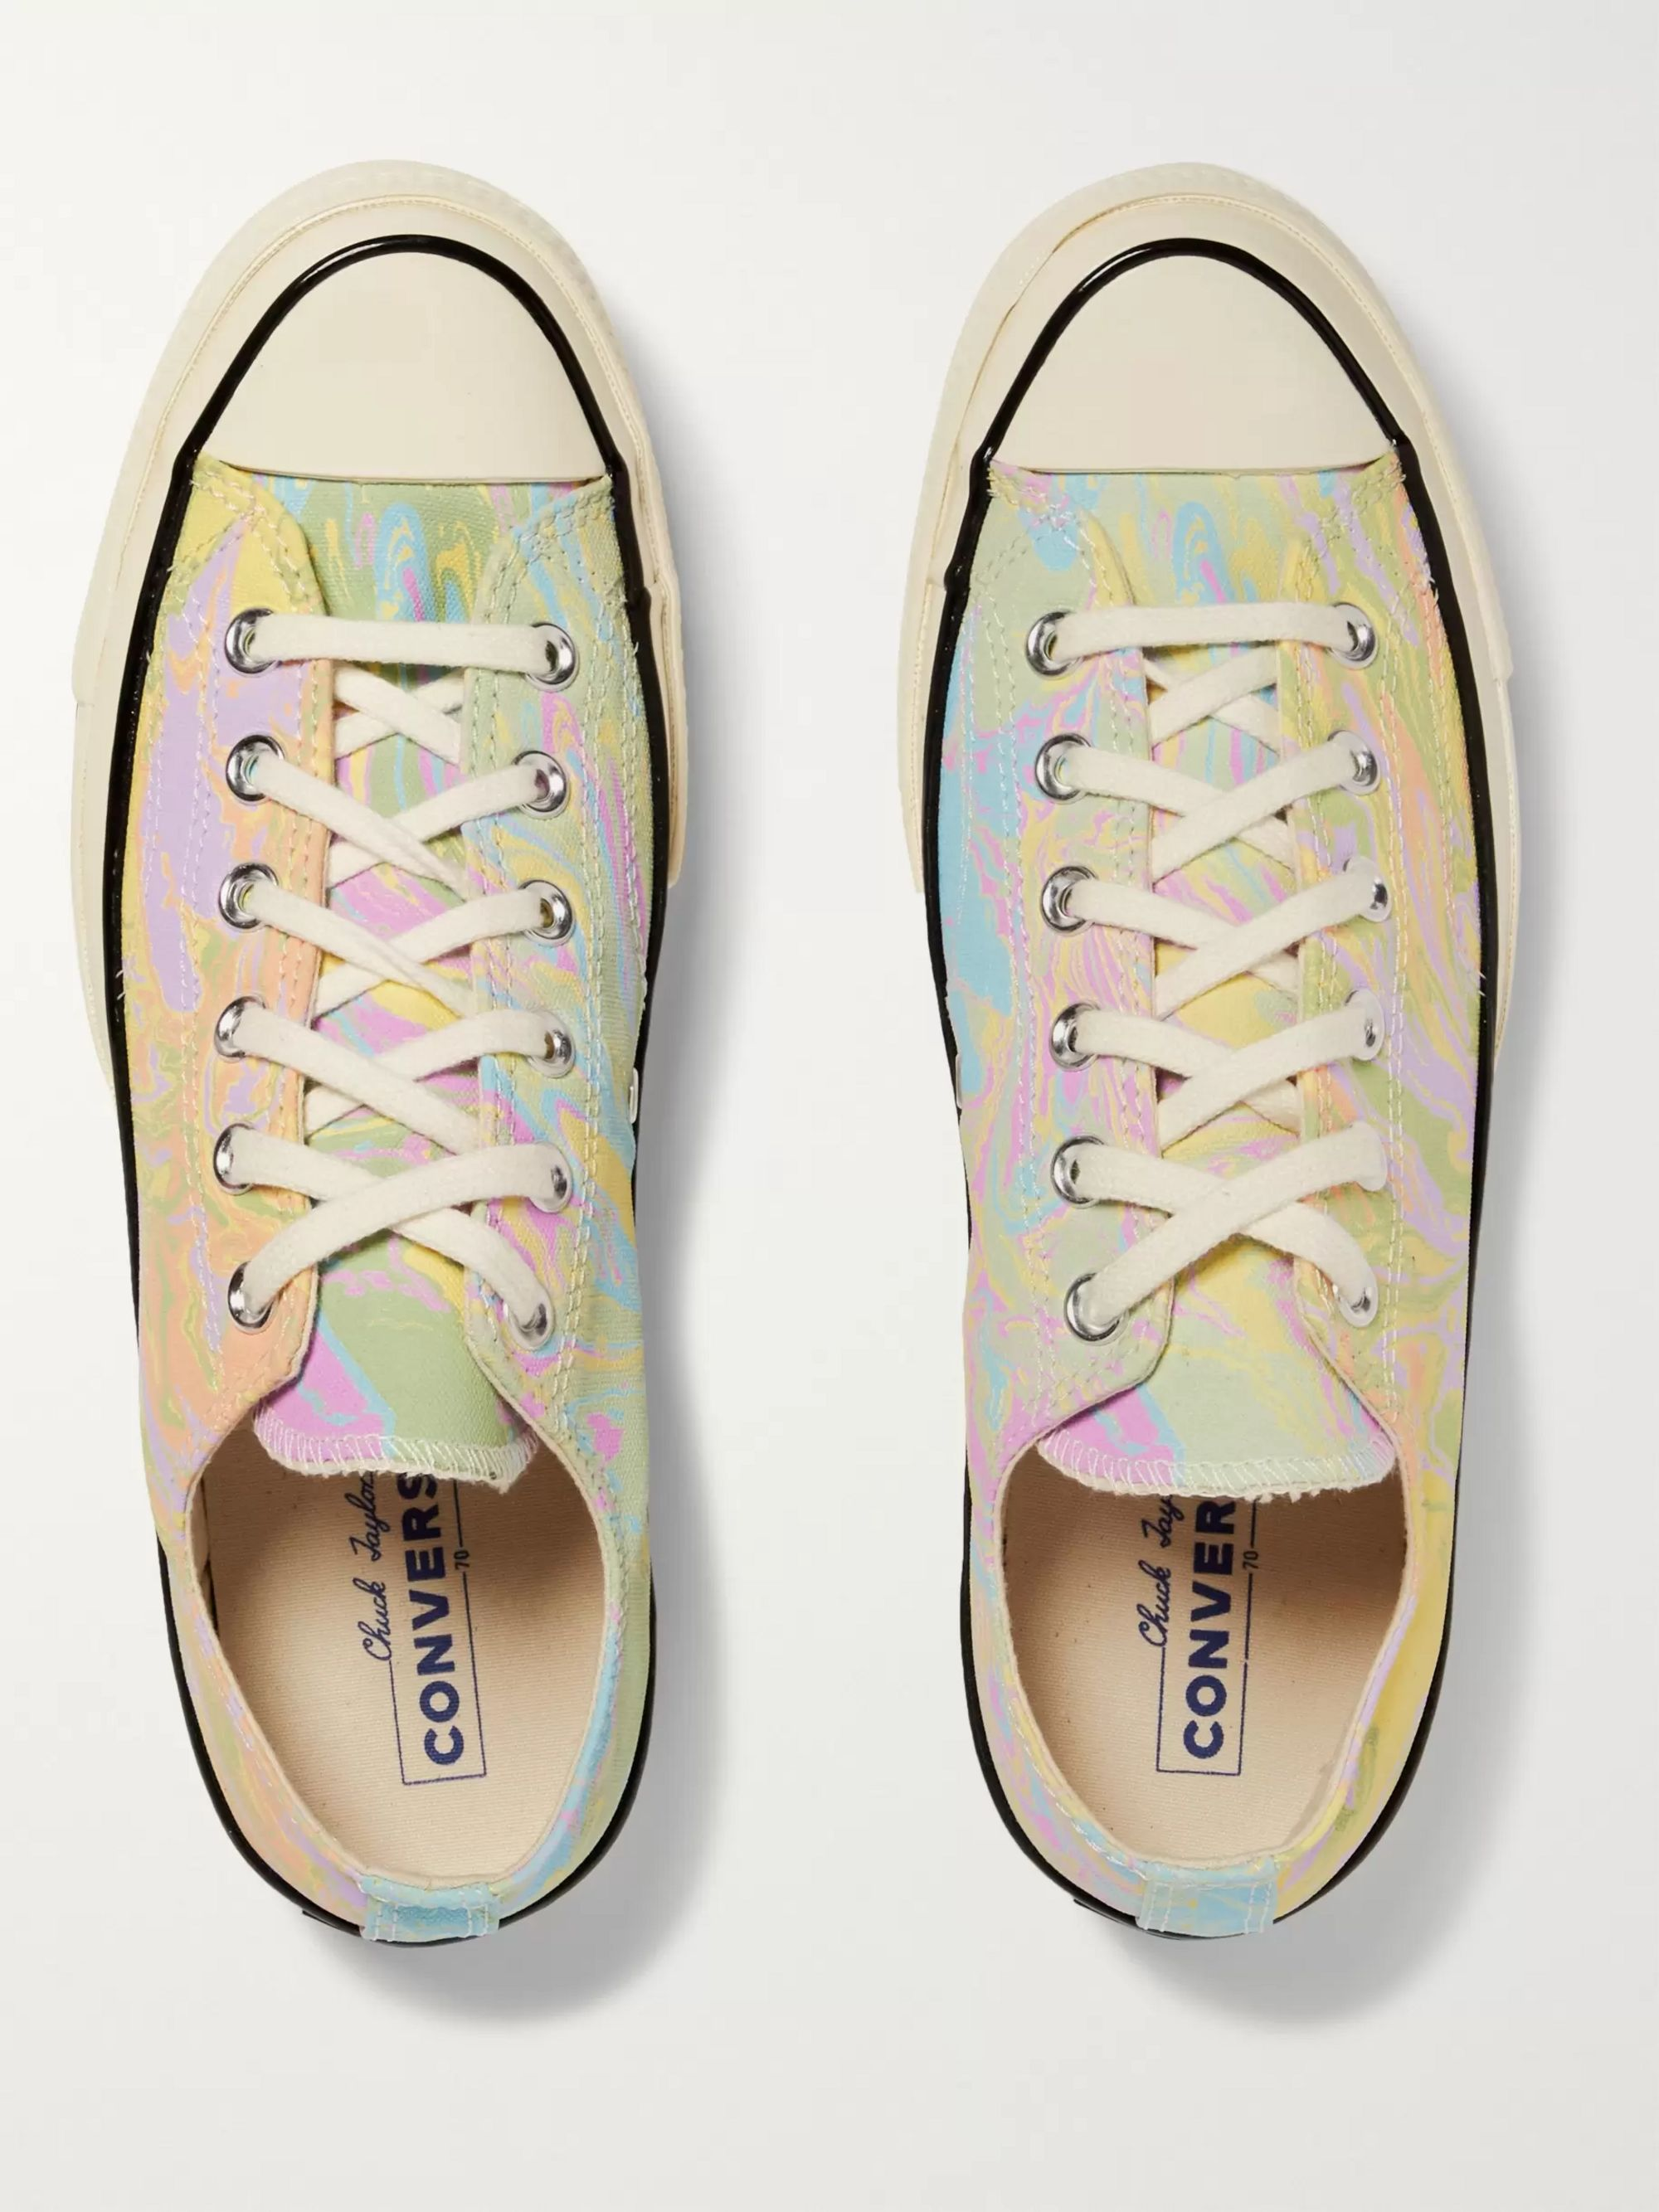 Converse Chuck 70 Marbled Canvas Sneakers